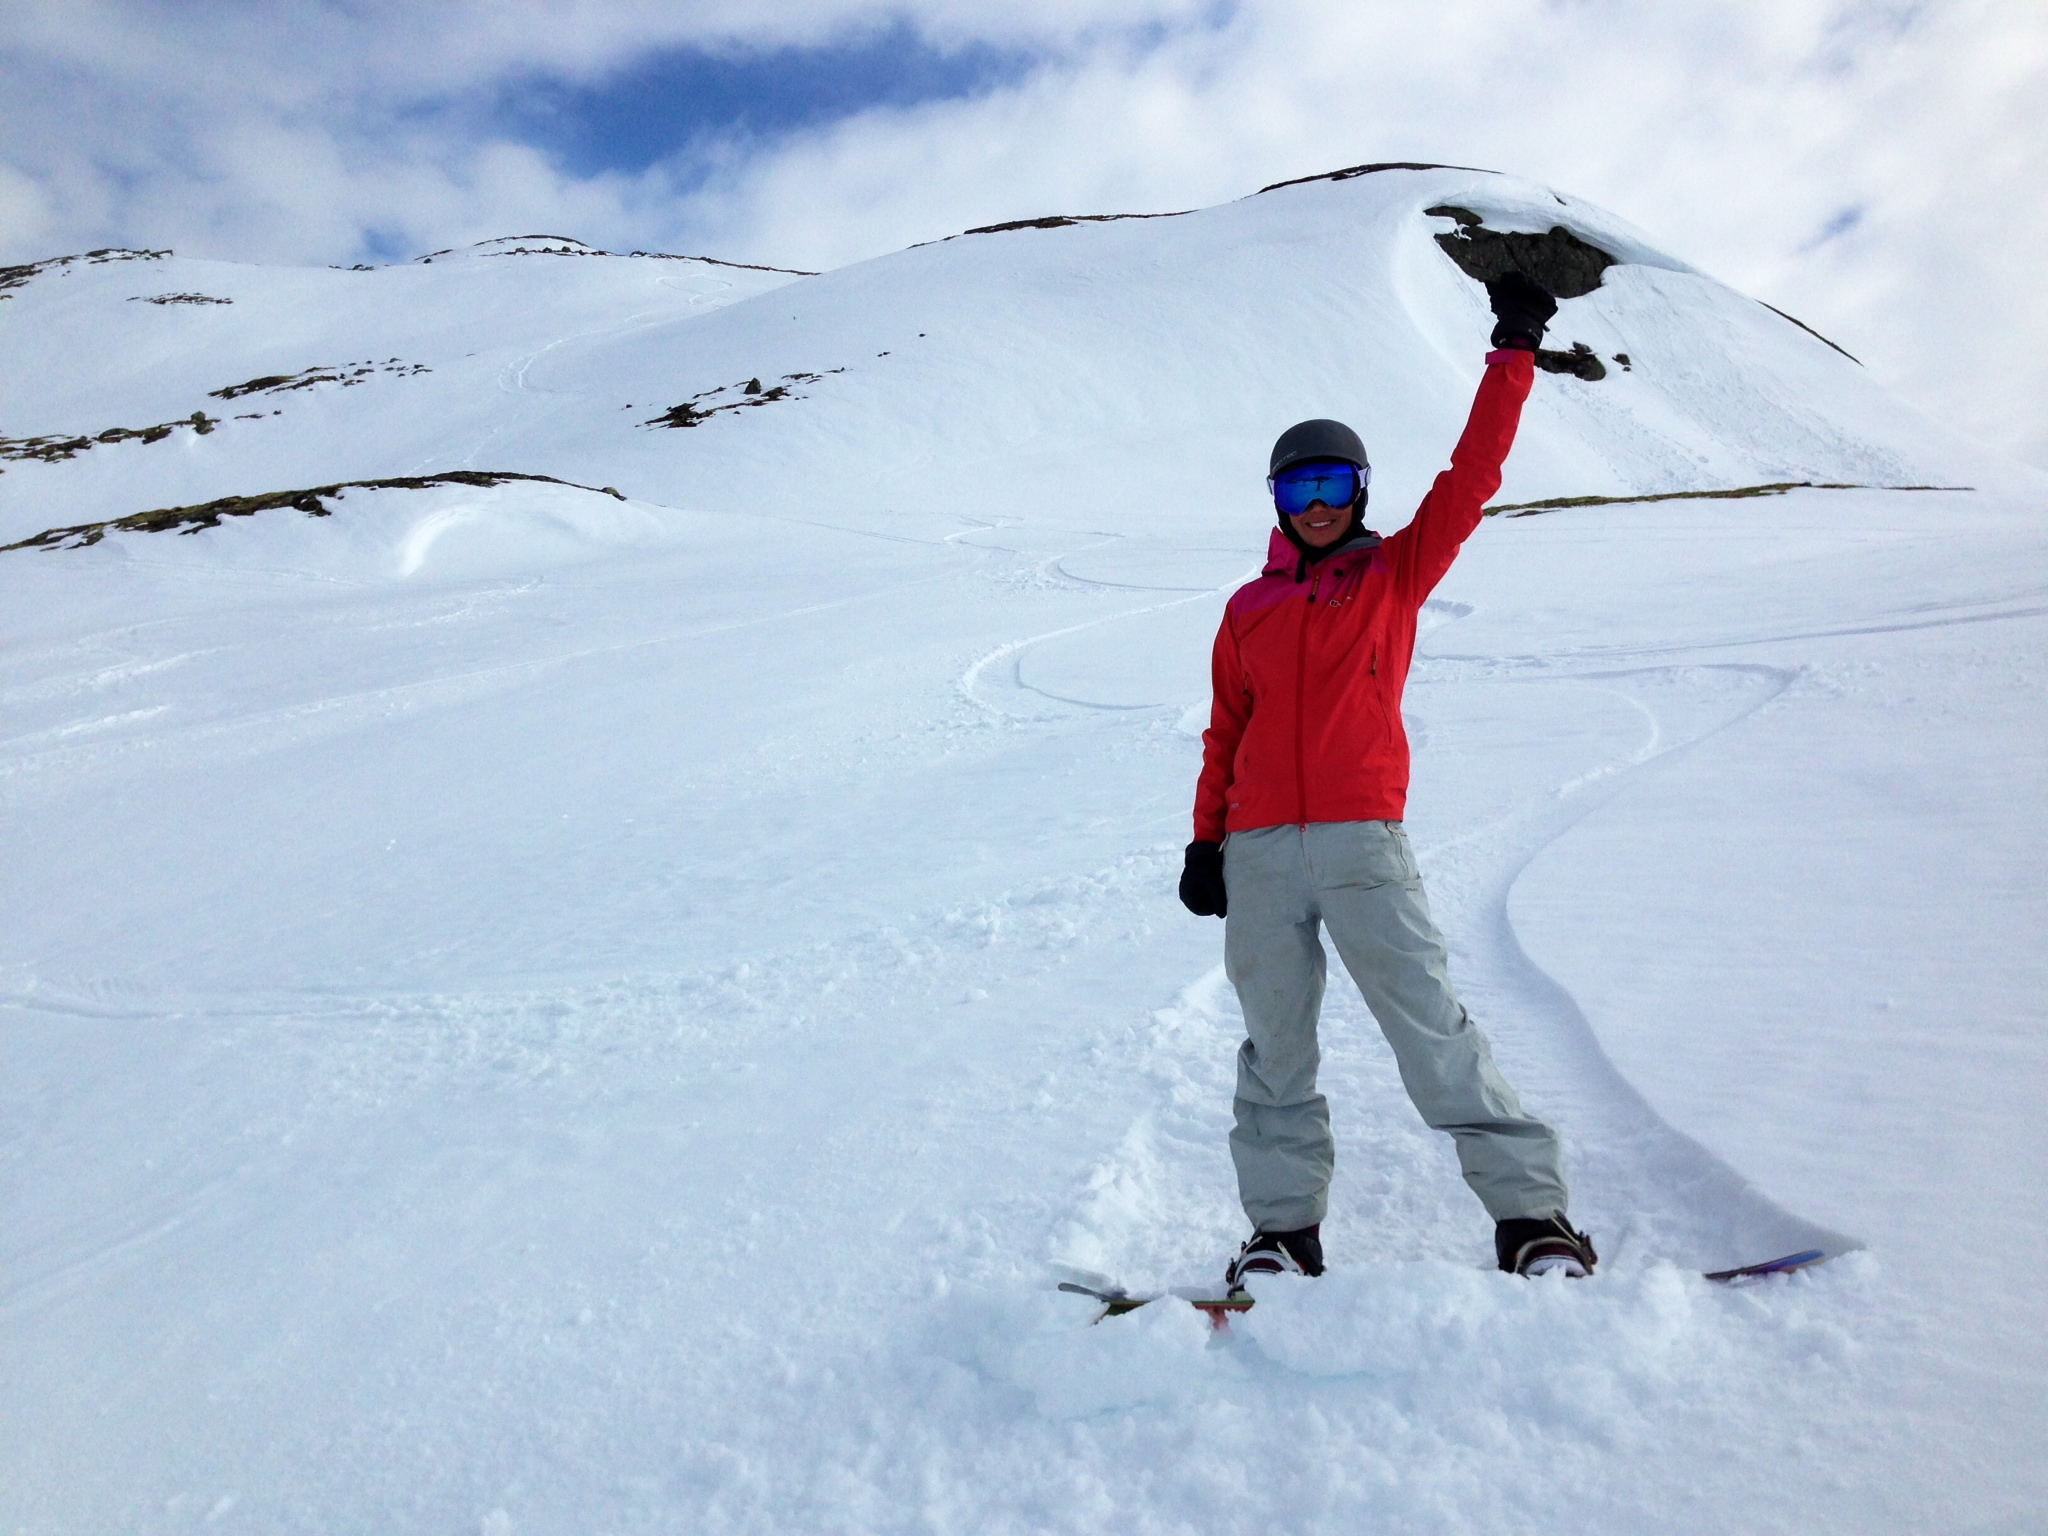 Fresh snow in mid May! Having fun with my husband last weekend.